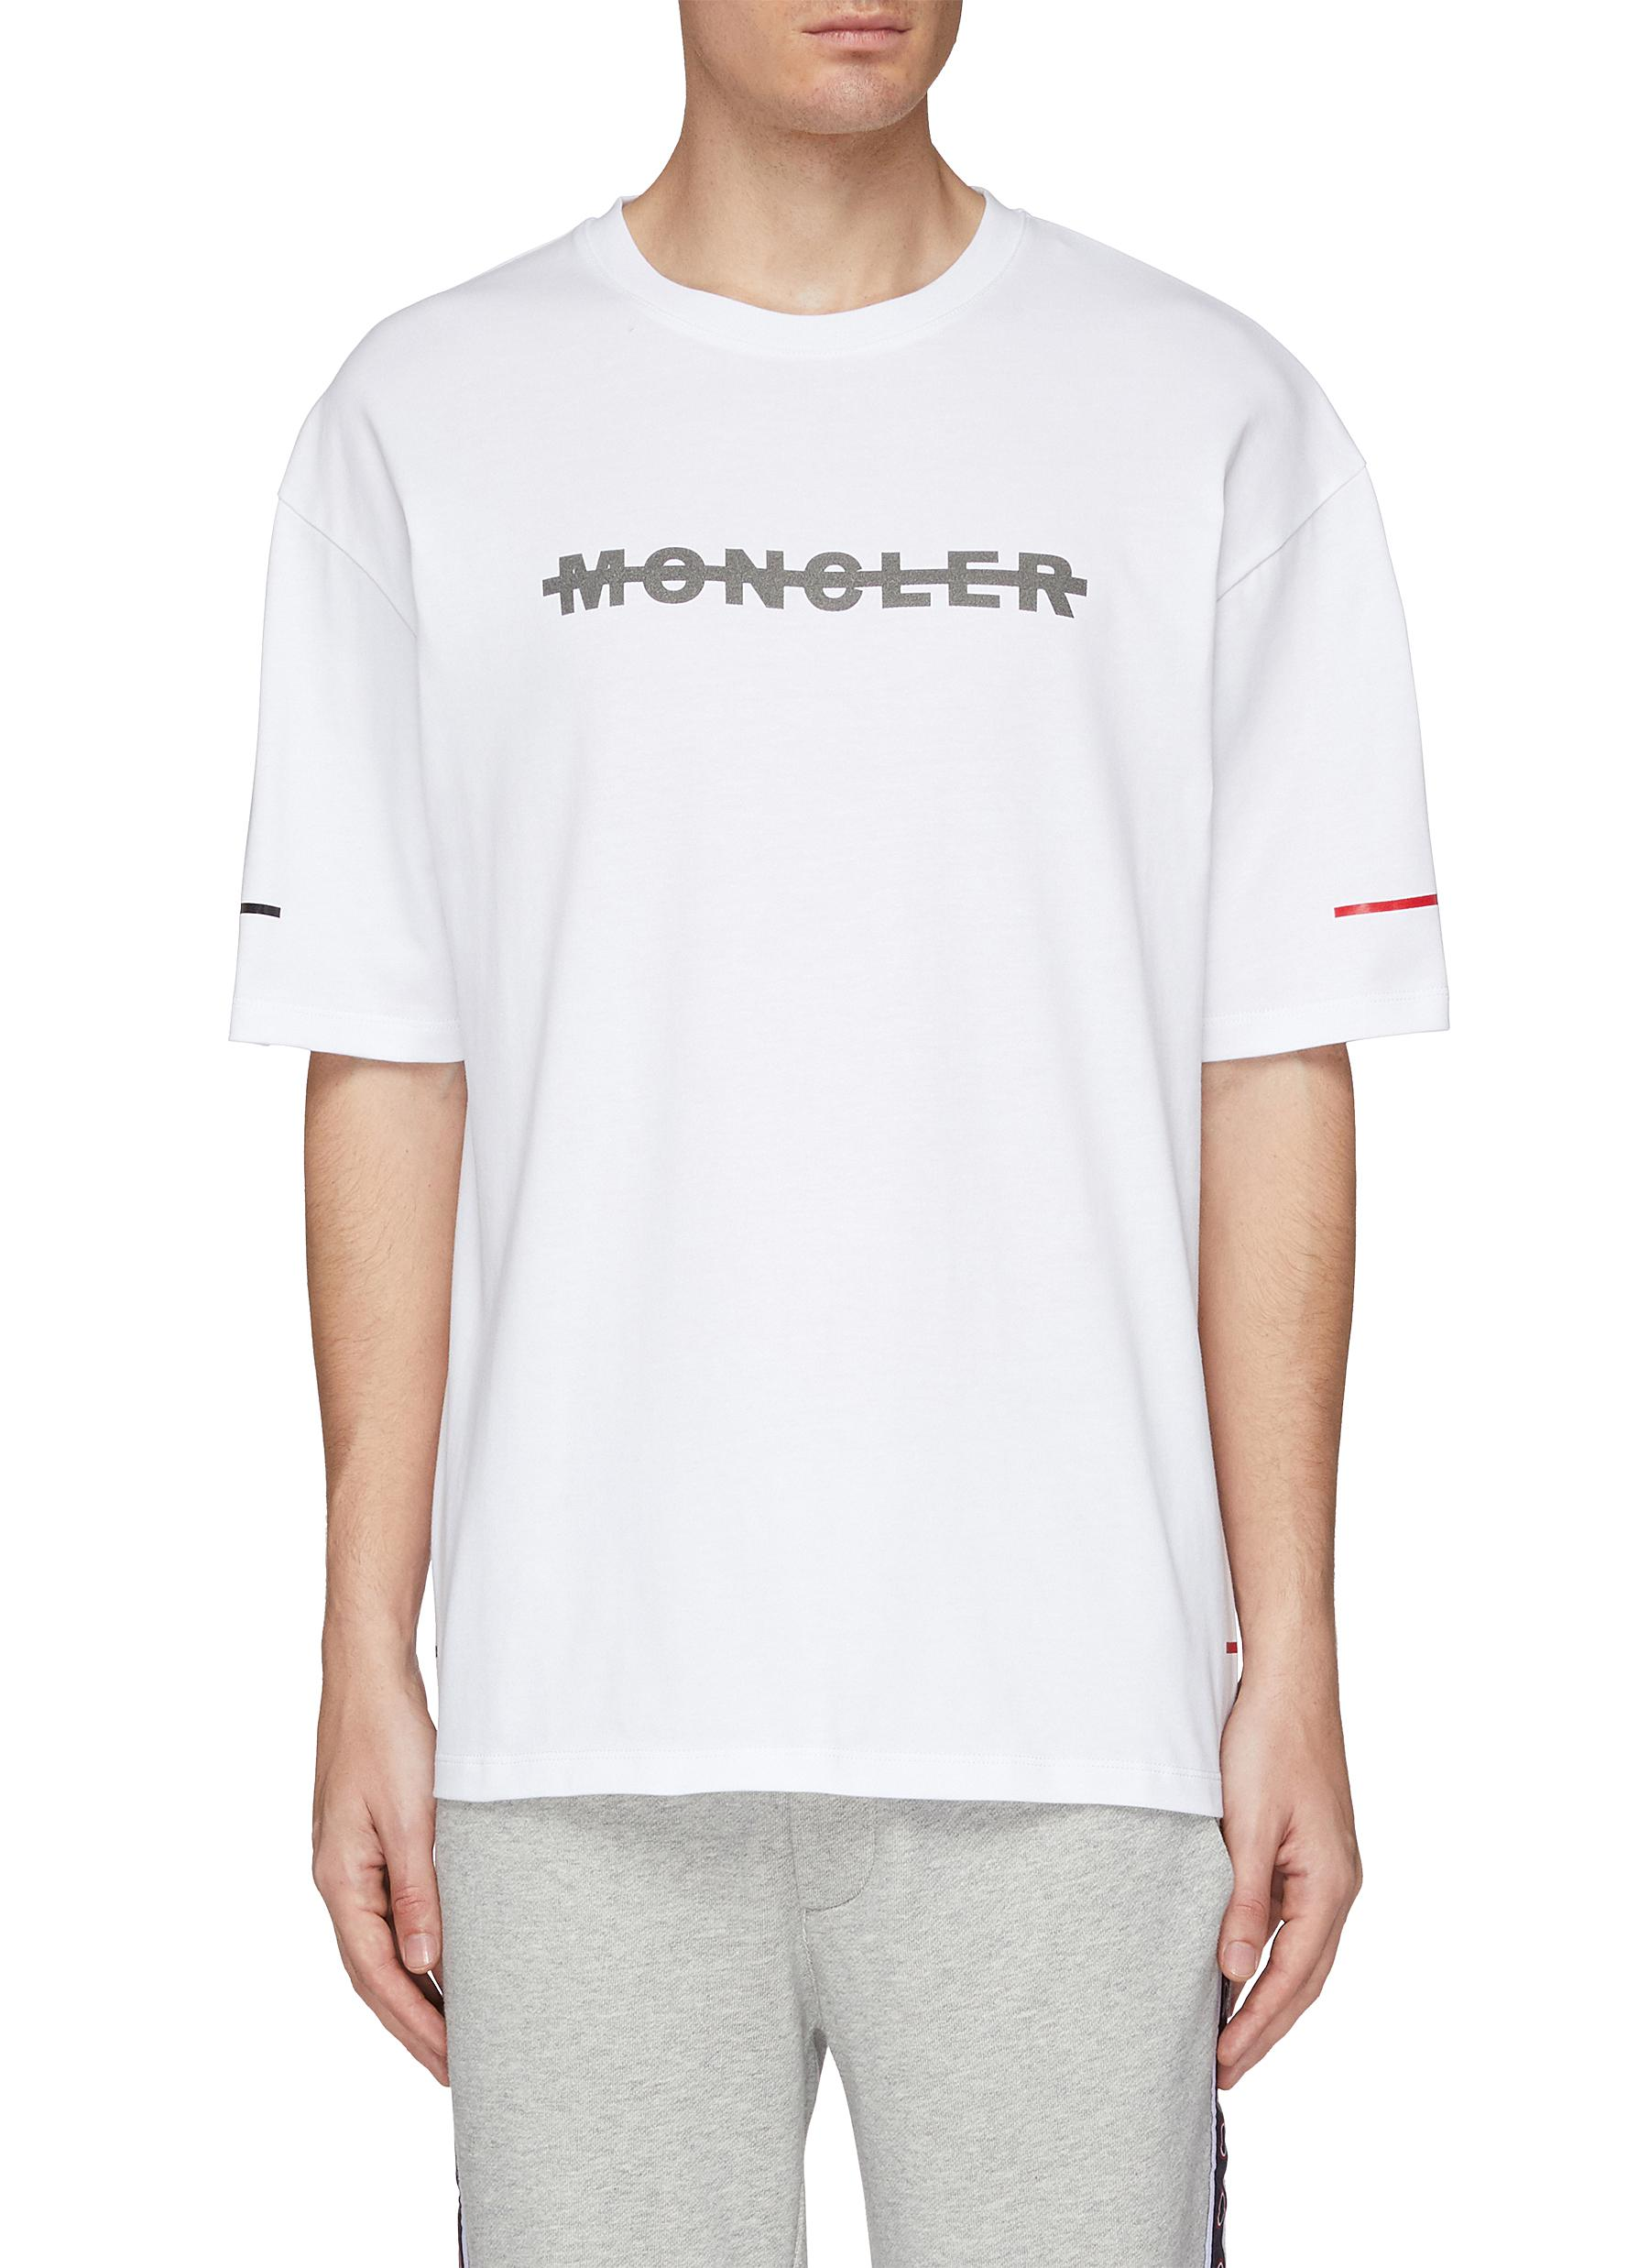 dd77470f6 Main View - Click To Enlarge - MONCLER - 'Maglia' logo print T-